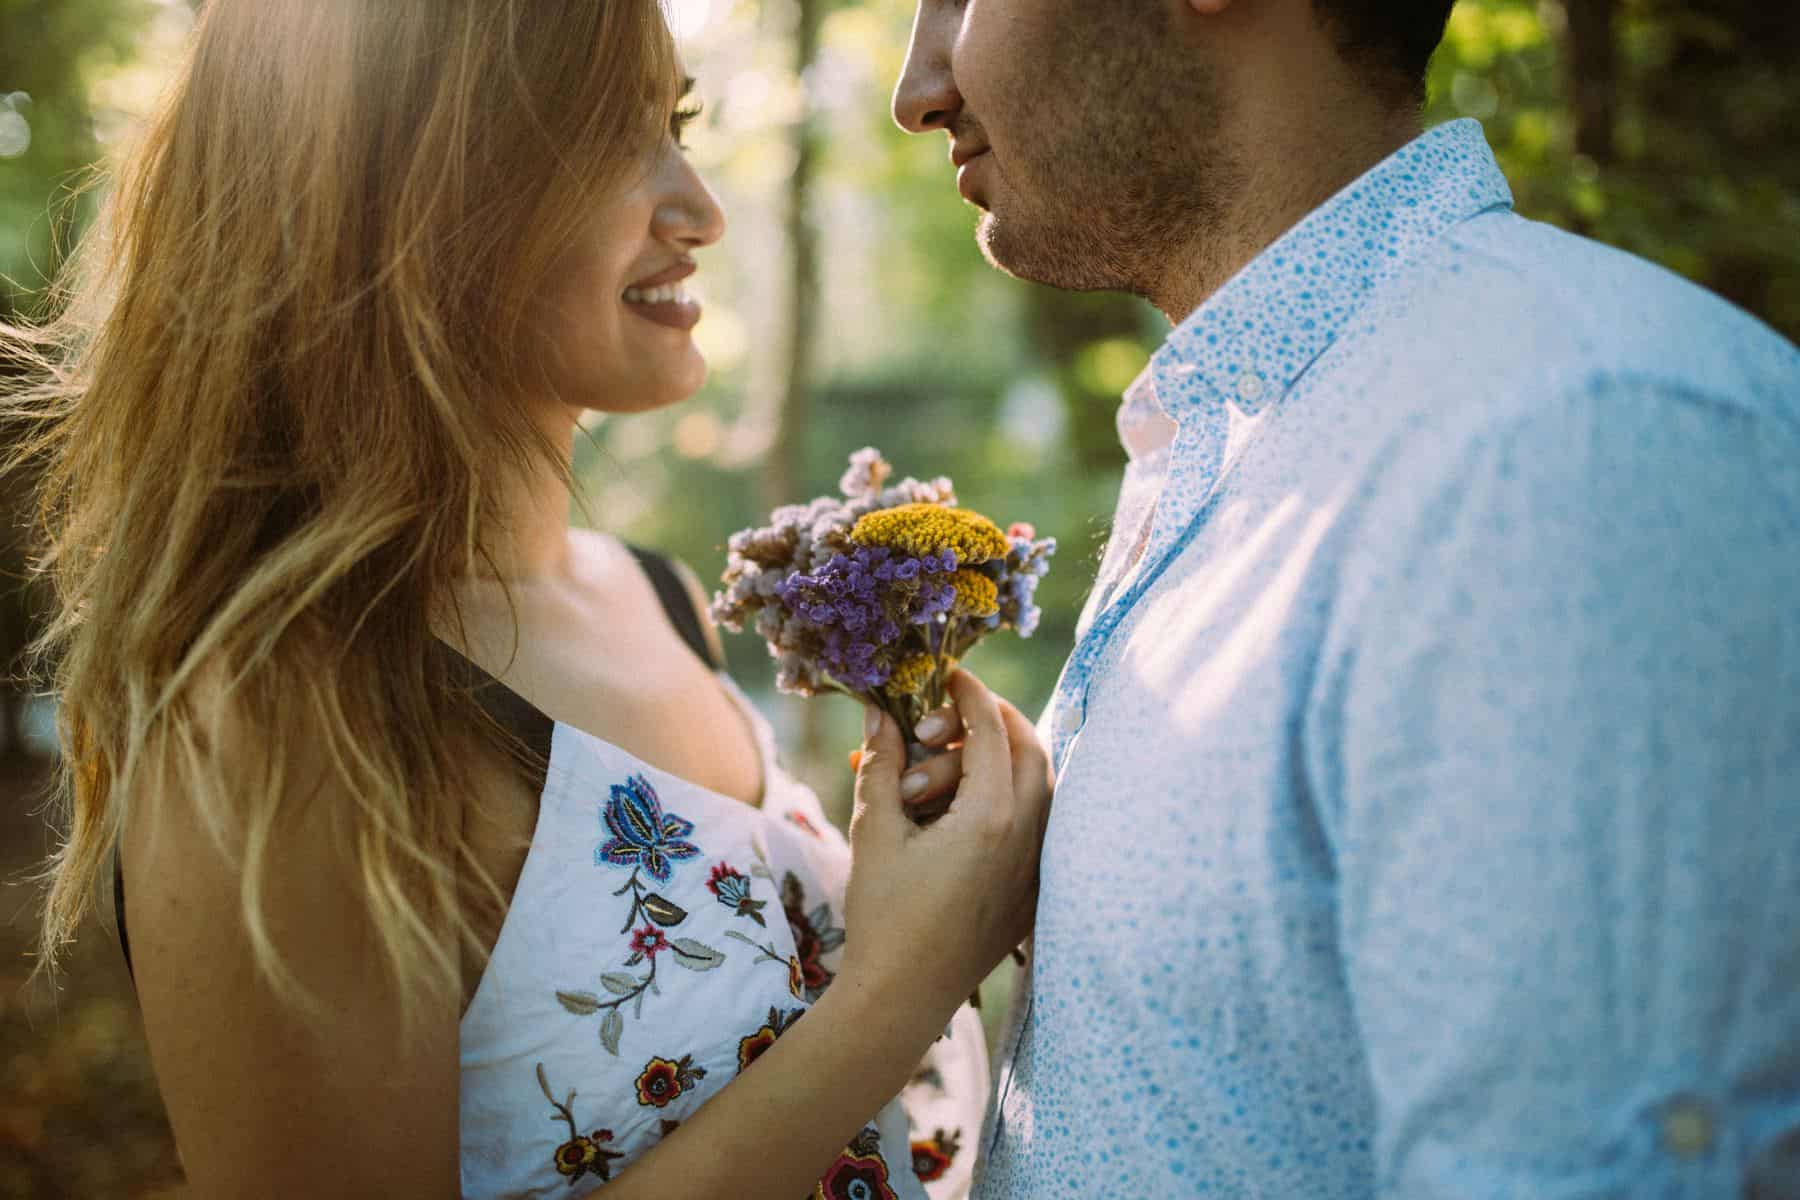 A Lifetime Of Forgiveness - Planning For A Healthy Relationship